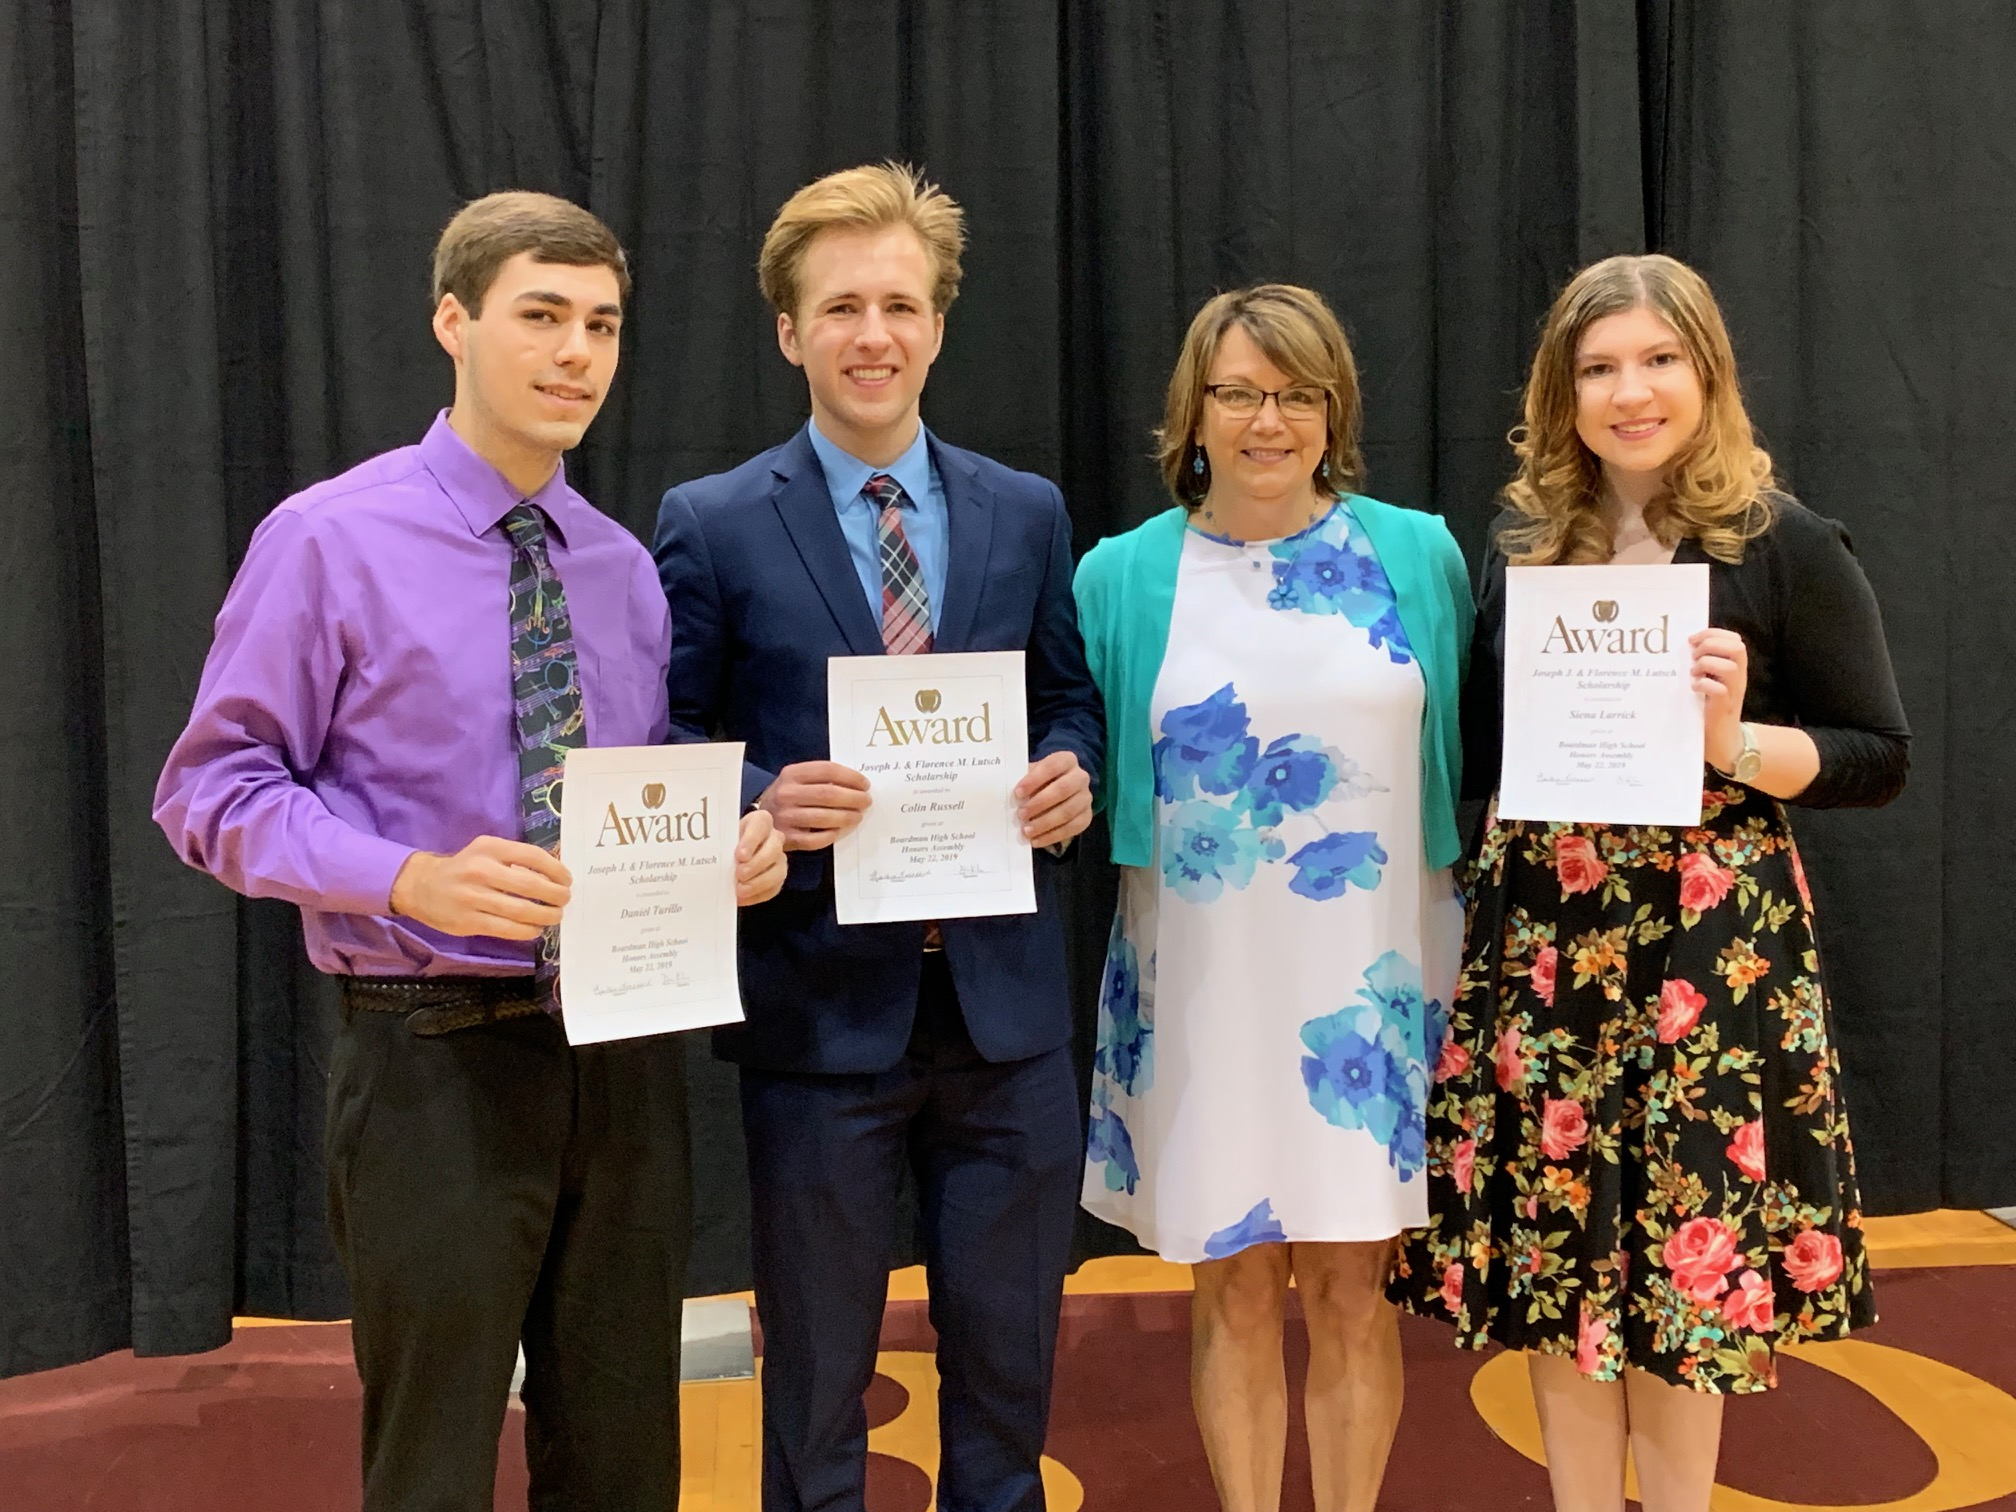 Scholarship winners Danny Turillo, Colin Russell, and Siena Larrick with Principal Fernback